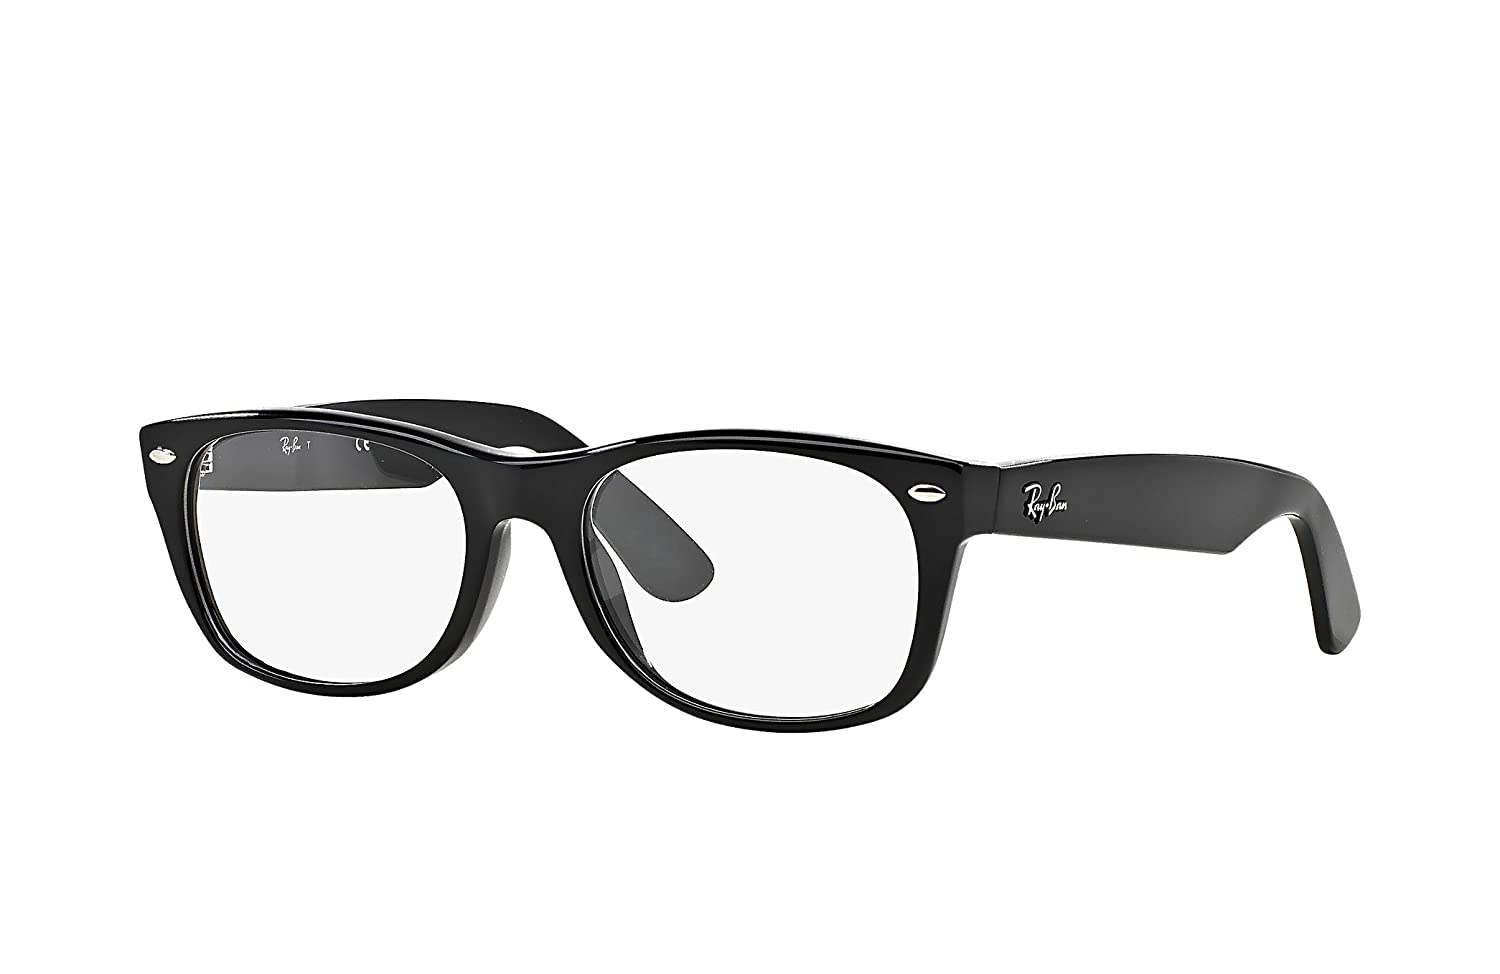 RAY BAN 5184 SIZE 50 READING GLASSES RX5184